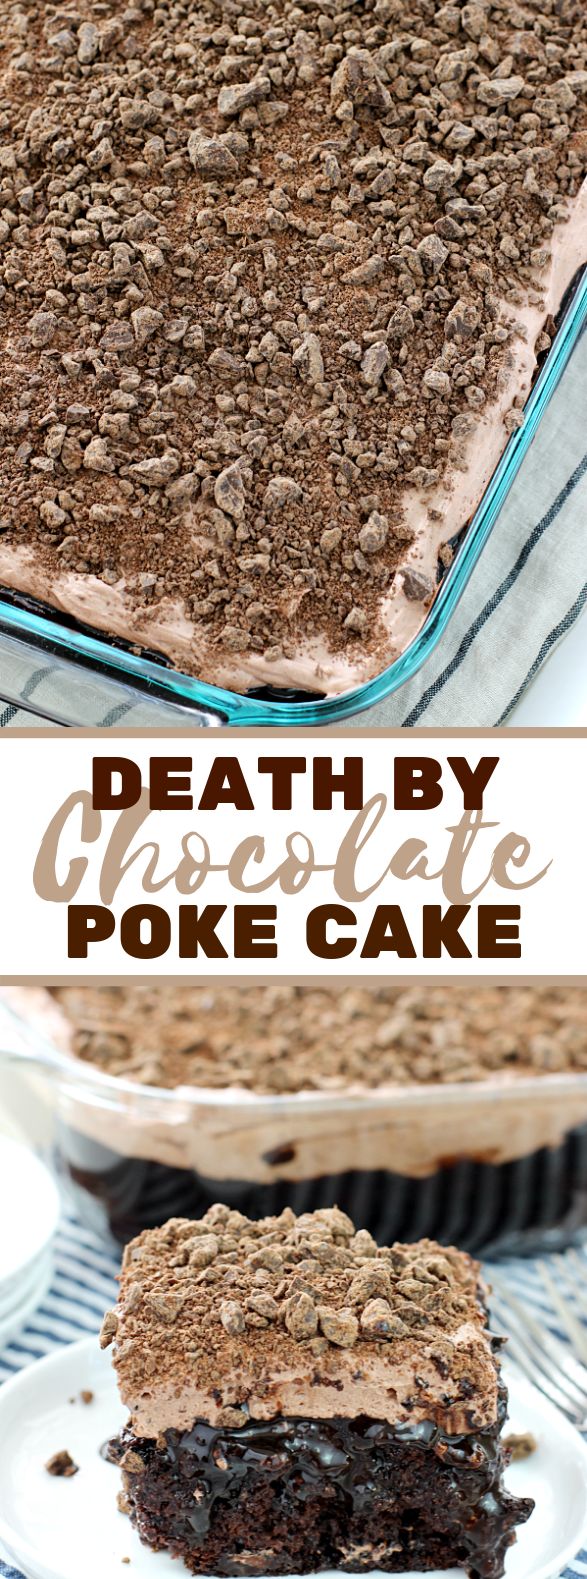 DEATH BY CHOCOLATE POKE CAKE #desserts #sweets